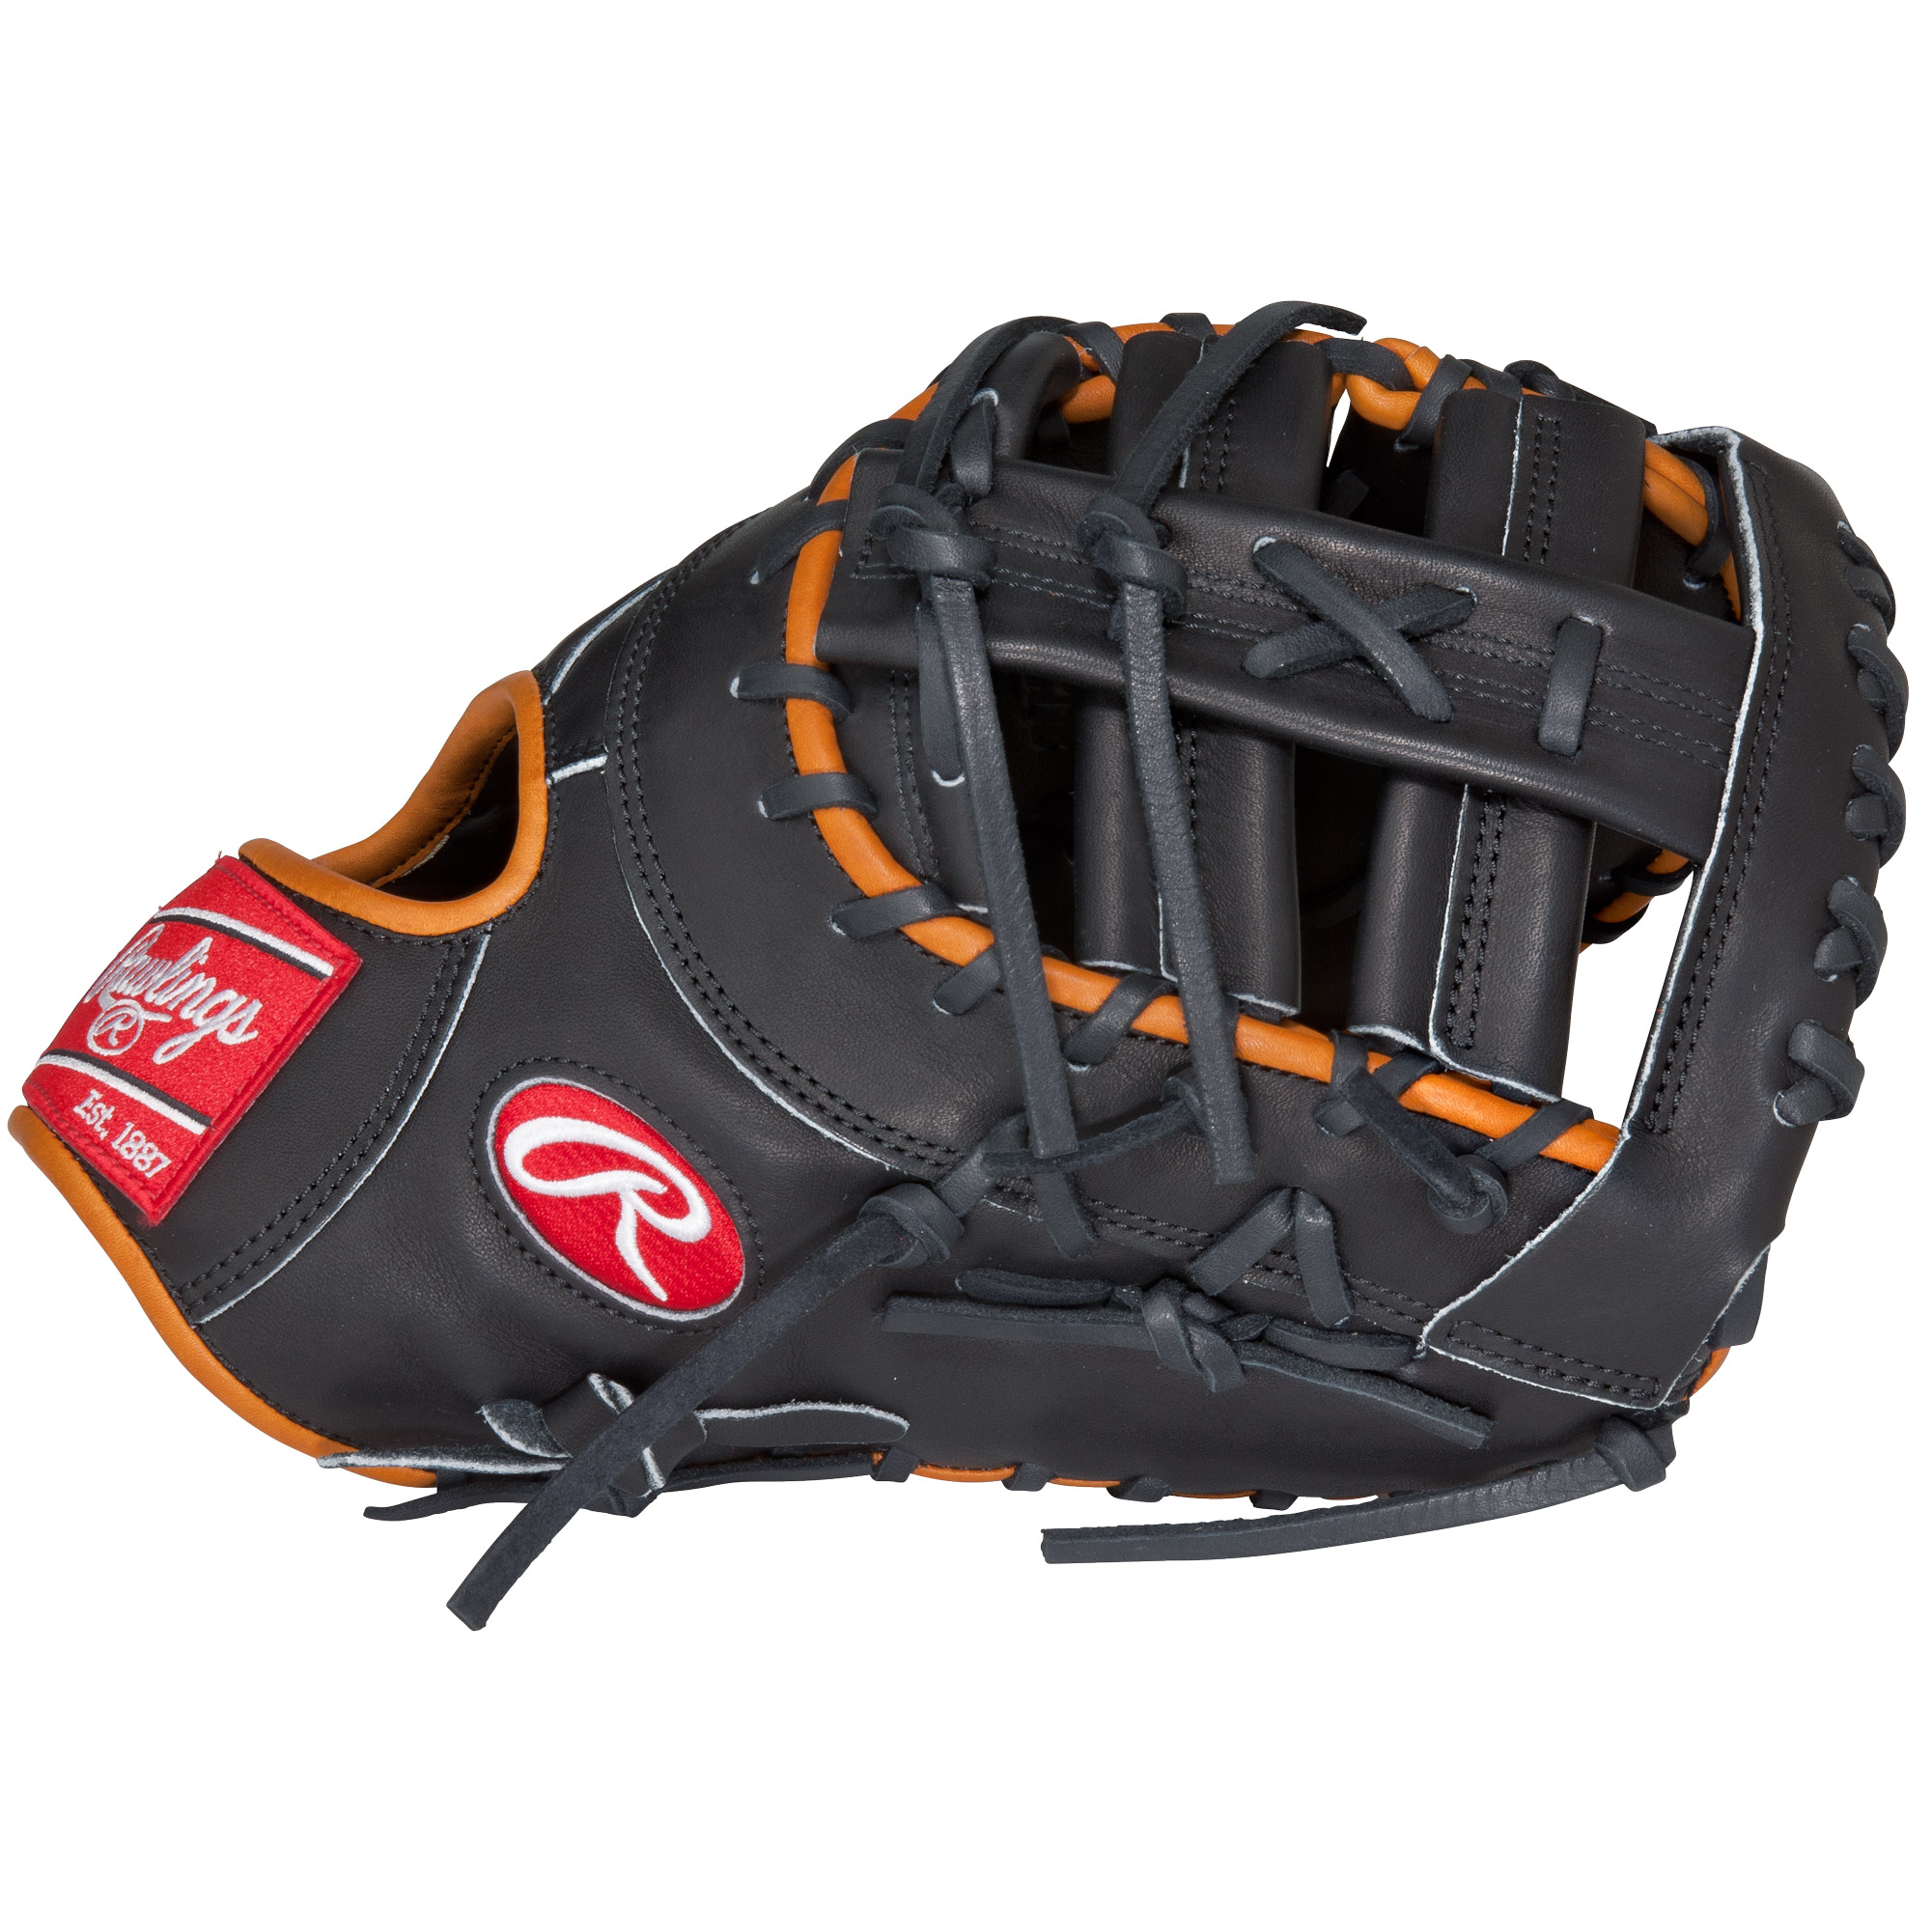 Rawlings Heart of the Hide 13 Inch First Base Mitt Adult Baseball Glove, Black by Rawlings